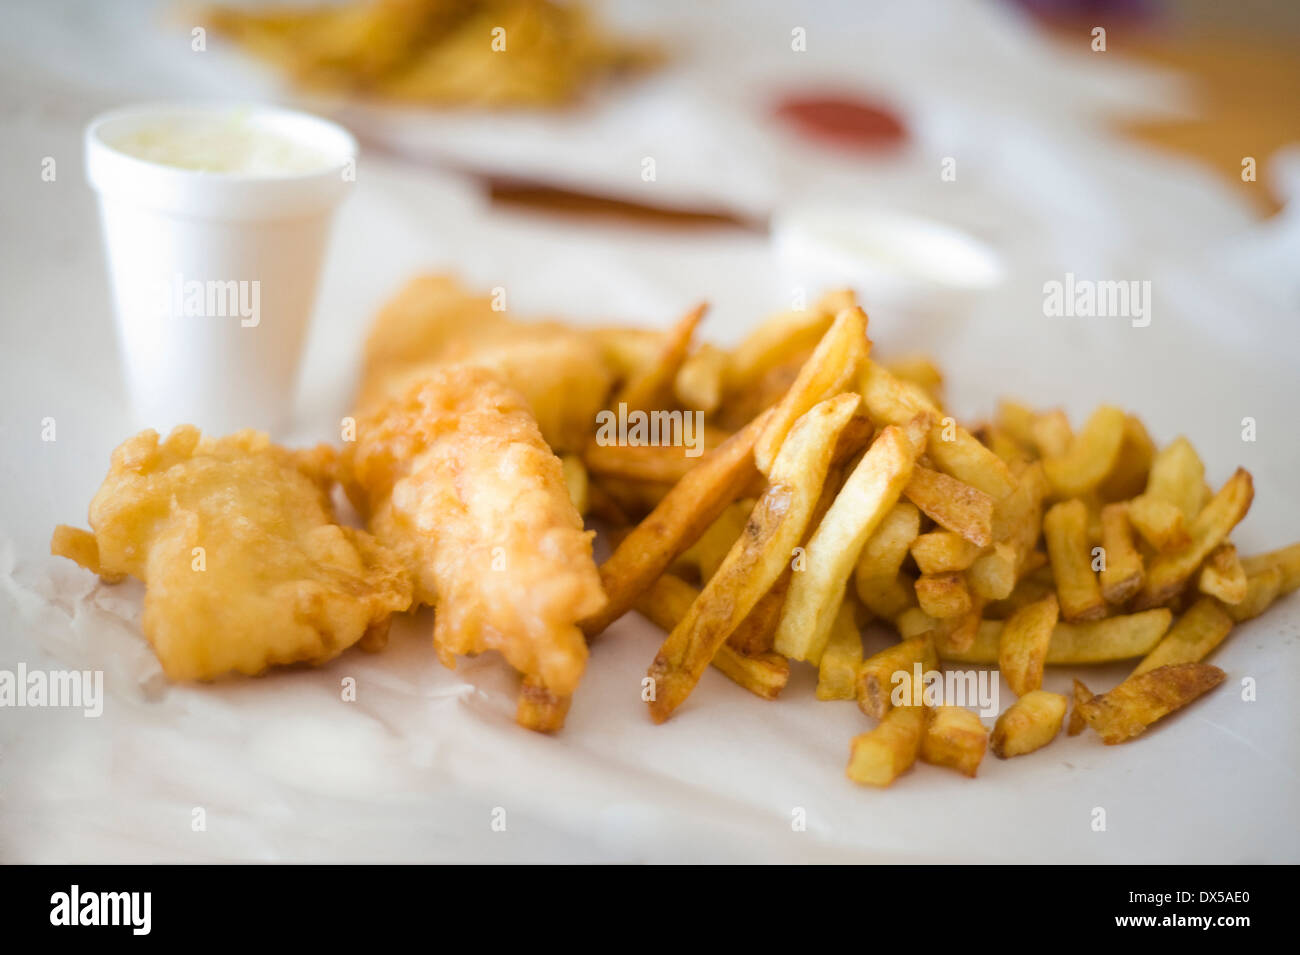 Take-out fish and chips on brown paper with a side of coleslaw in a styrofoam cup - Stock Image